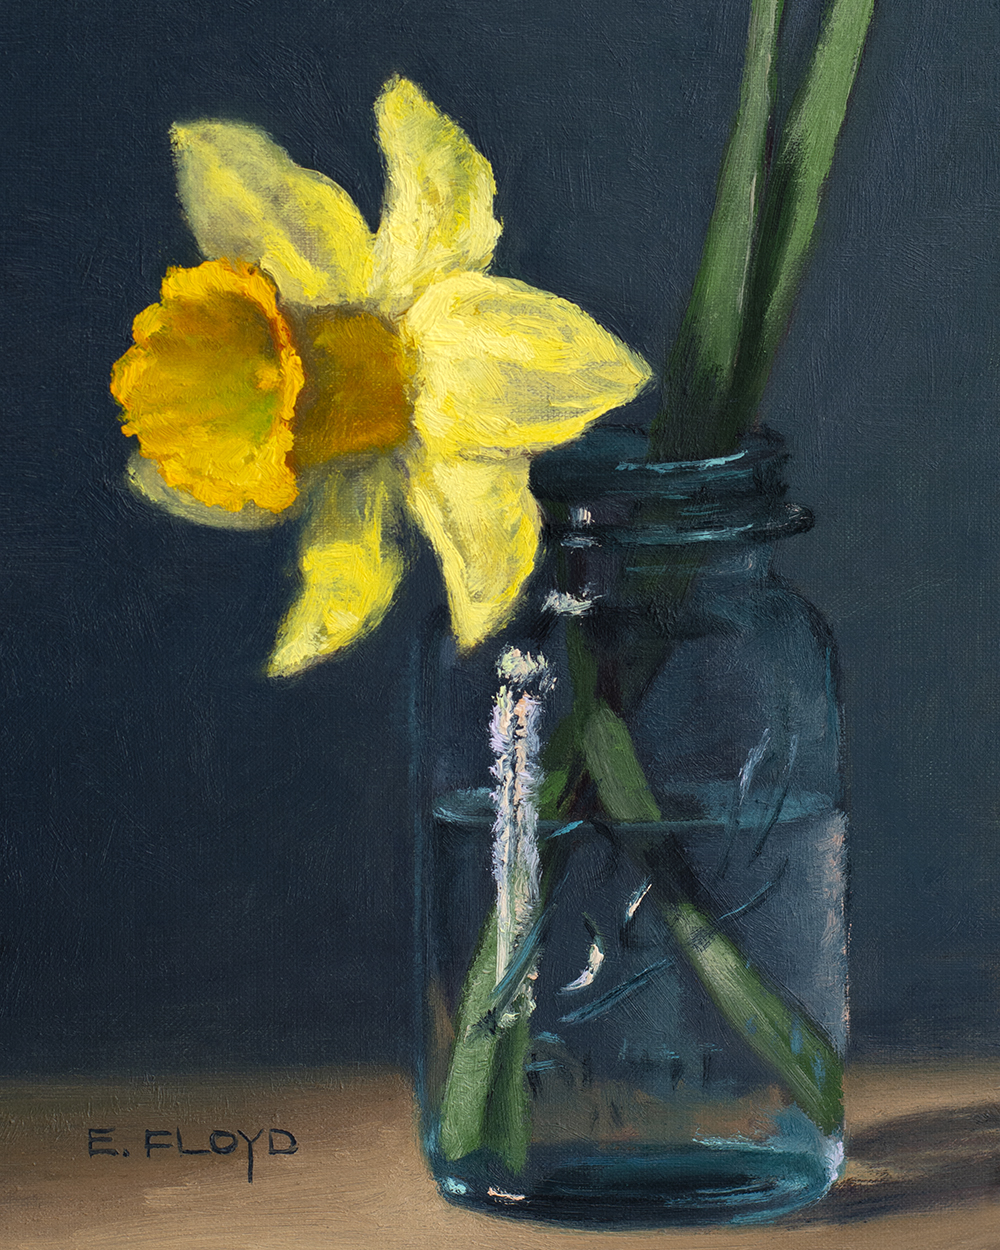 Daffodil in a Canning Jar, 8 x 6 inches, oil on linen panel, SOLD